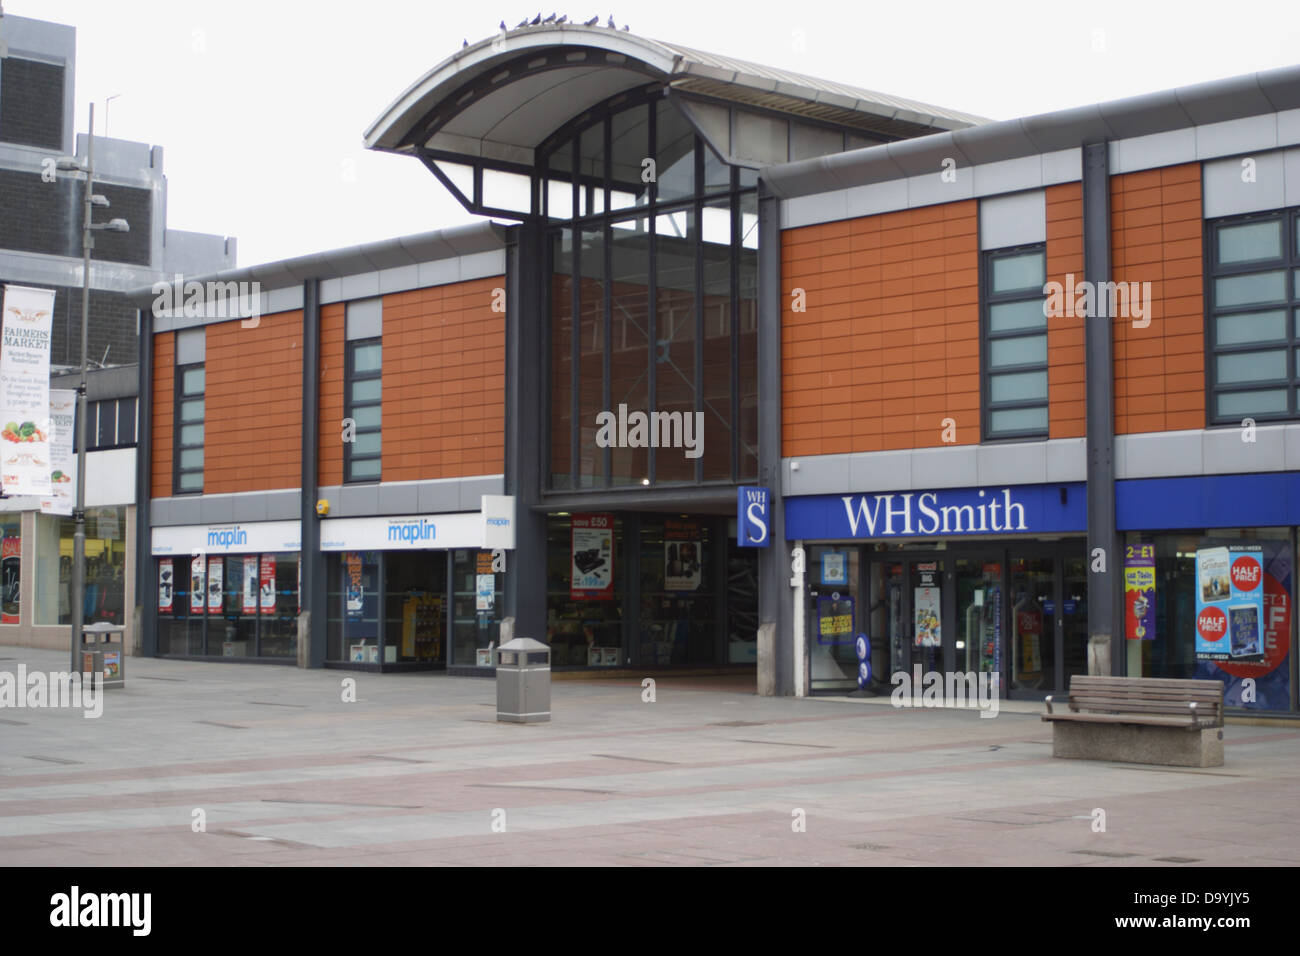 Shops in Sunderland, Maplins, and WHSmiths. - Stock Image